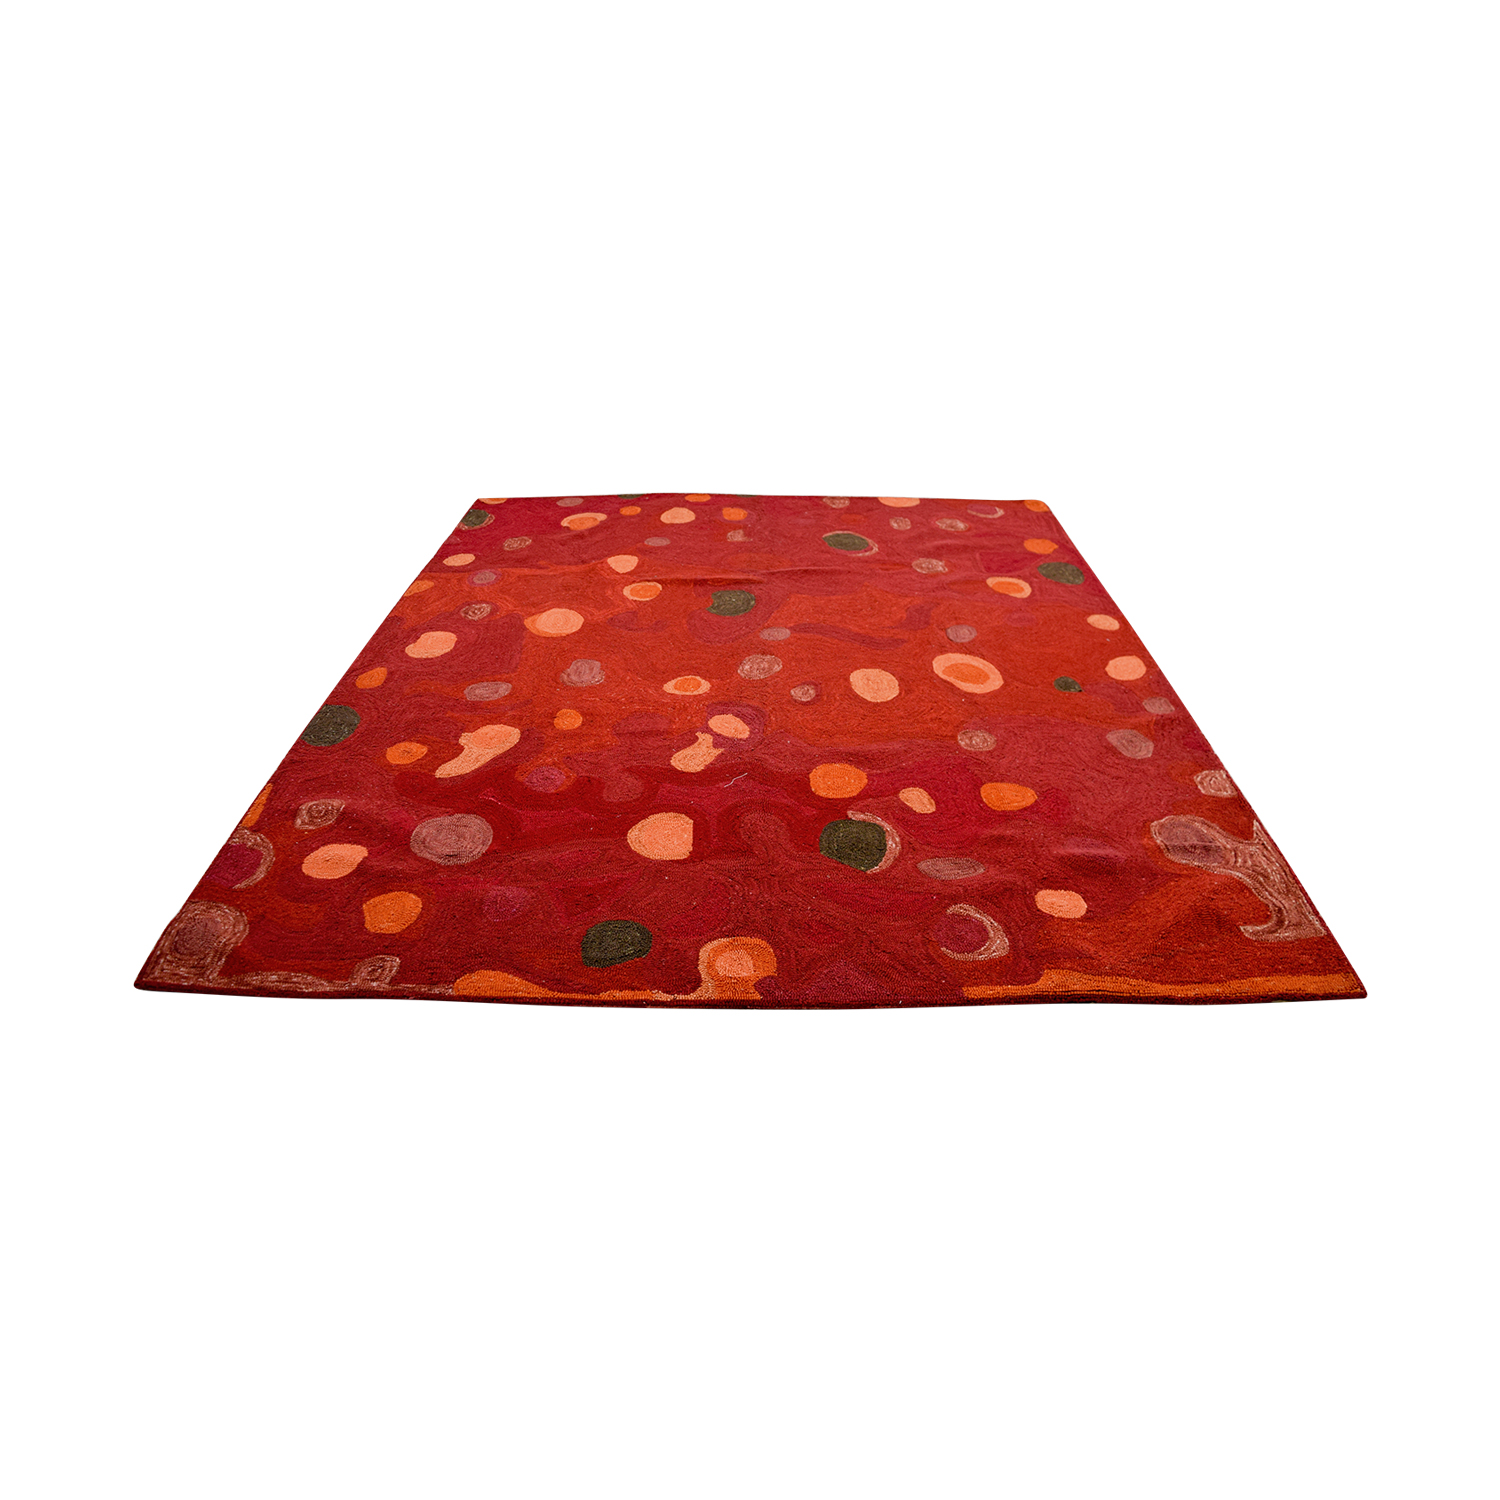 Obeetee Obeetee Red with Colored Spots Rug